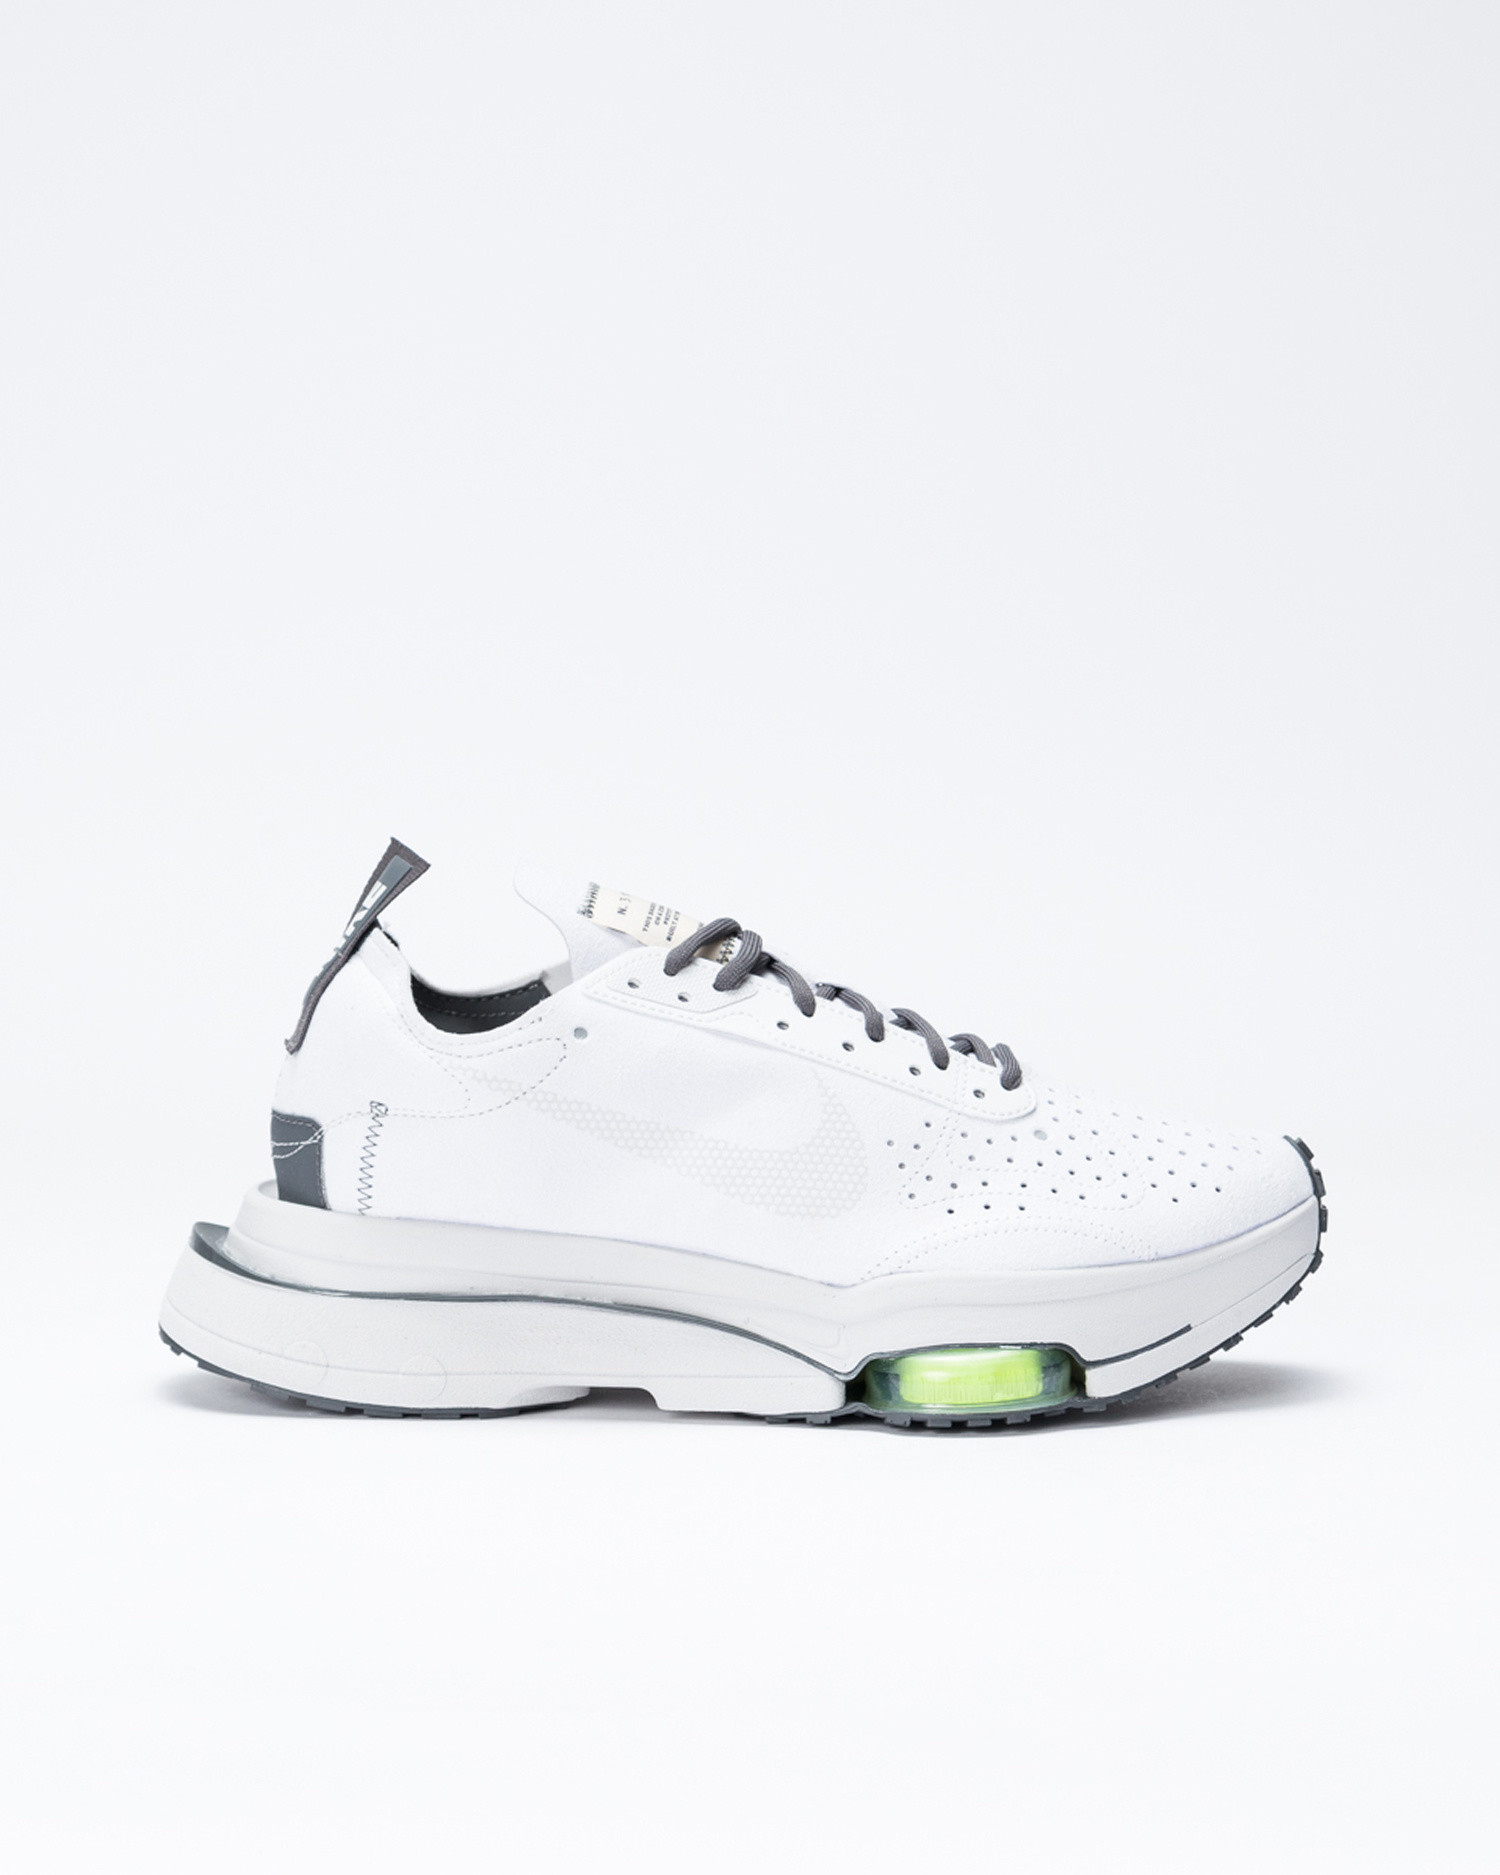 Nike Air Zoom-Type Summit White/Black-LT Orewood Brn